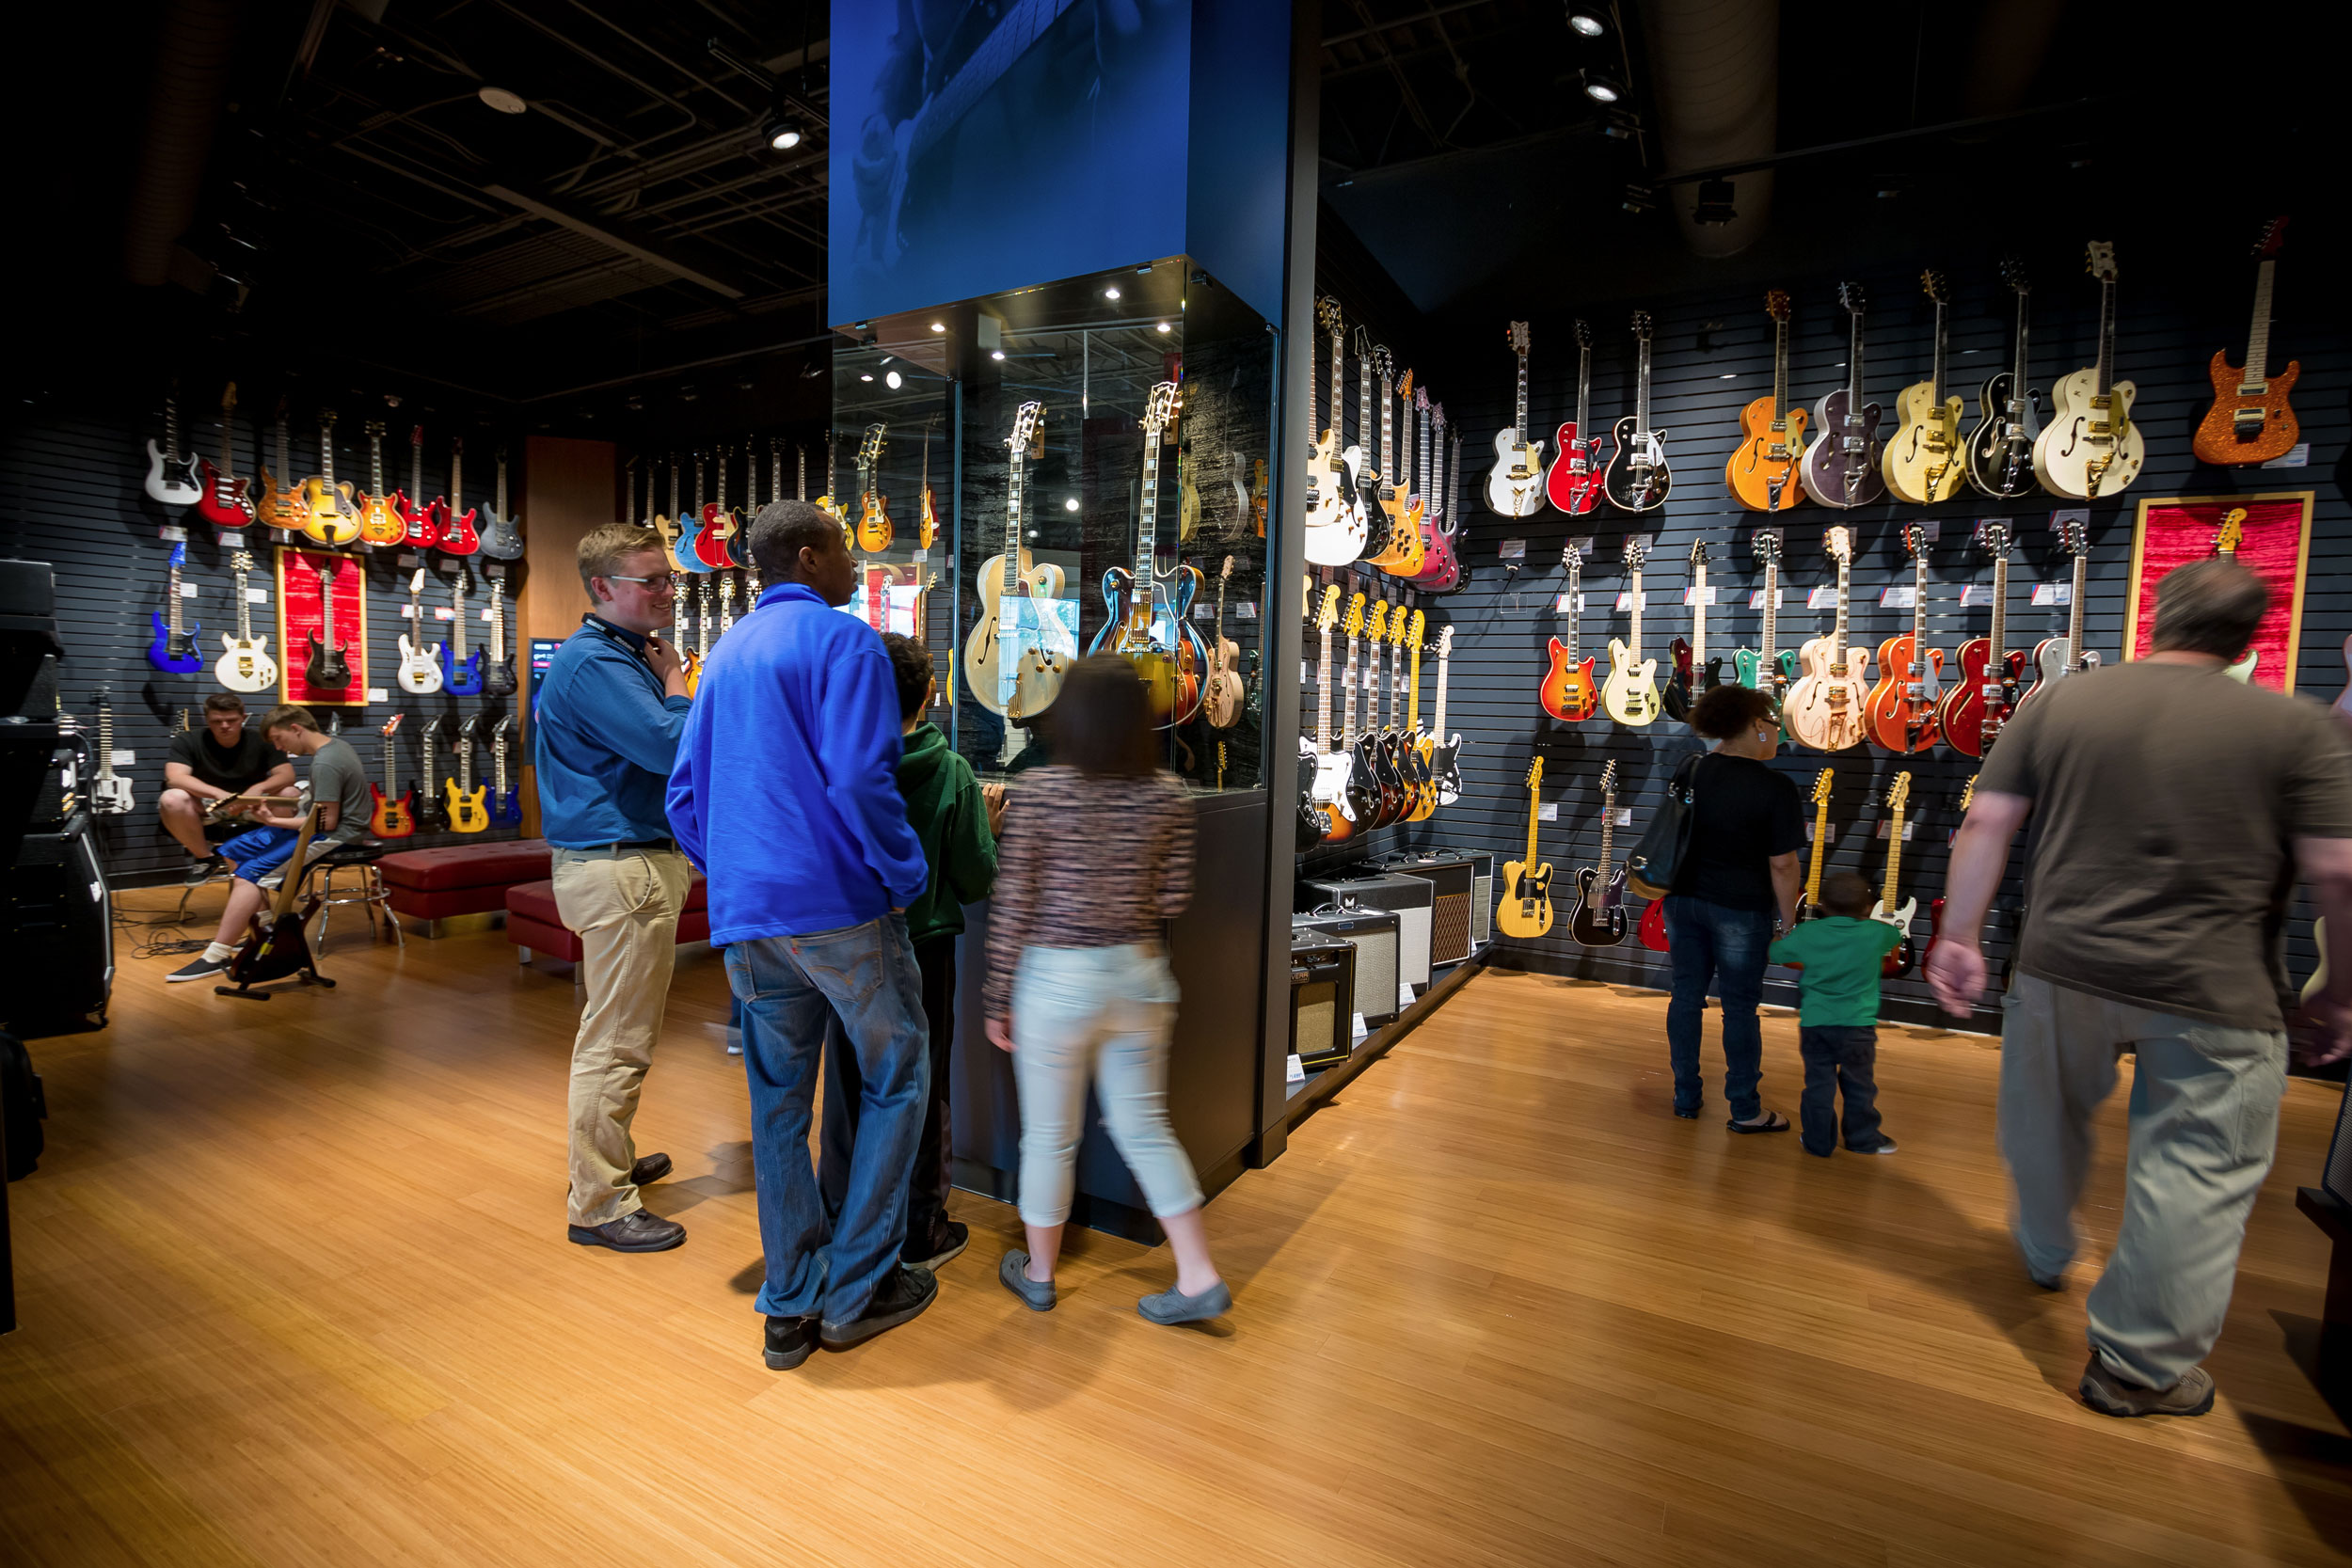 Sweetwater Expands and Enhances Music Store